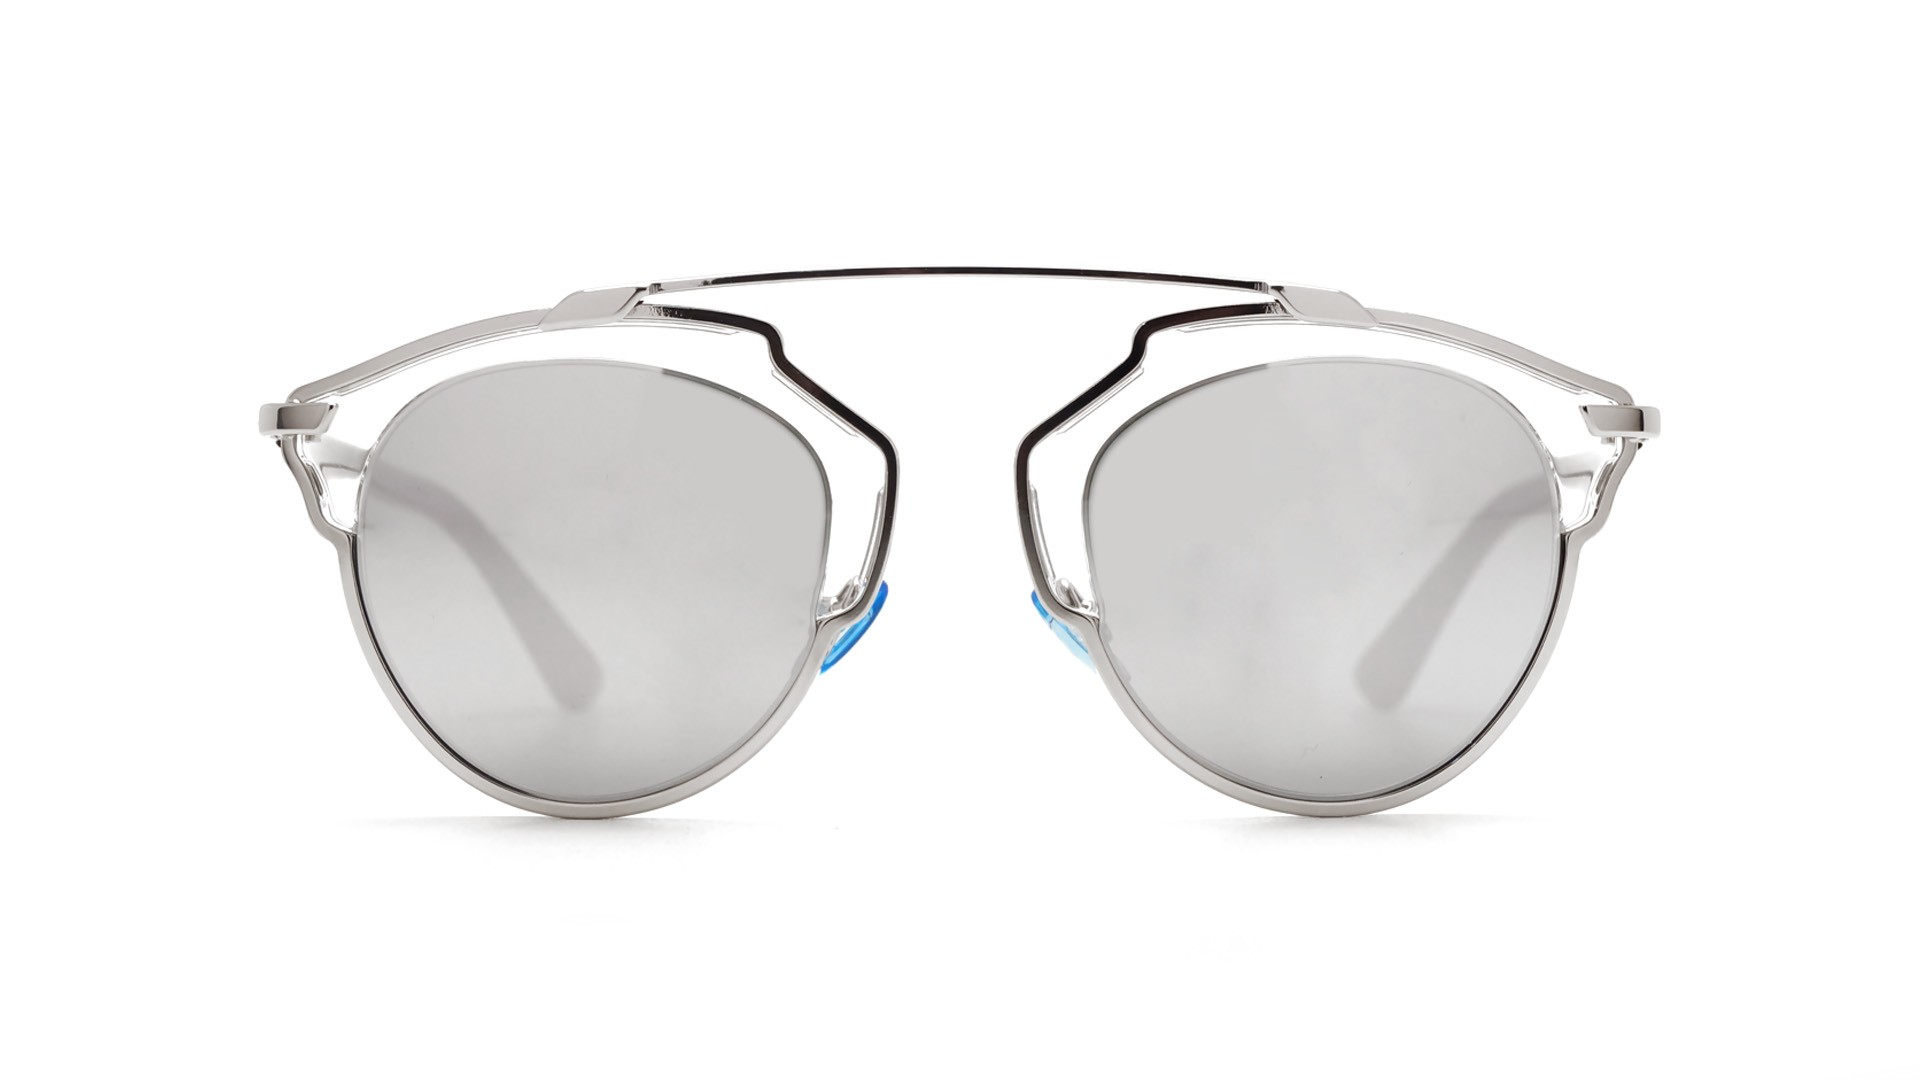 f82a66c75d61 Sunglasses Dior SoReal Silver APPDC 48-22 Medium Flash